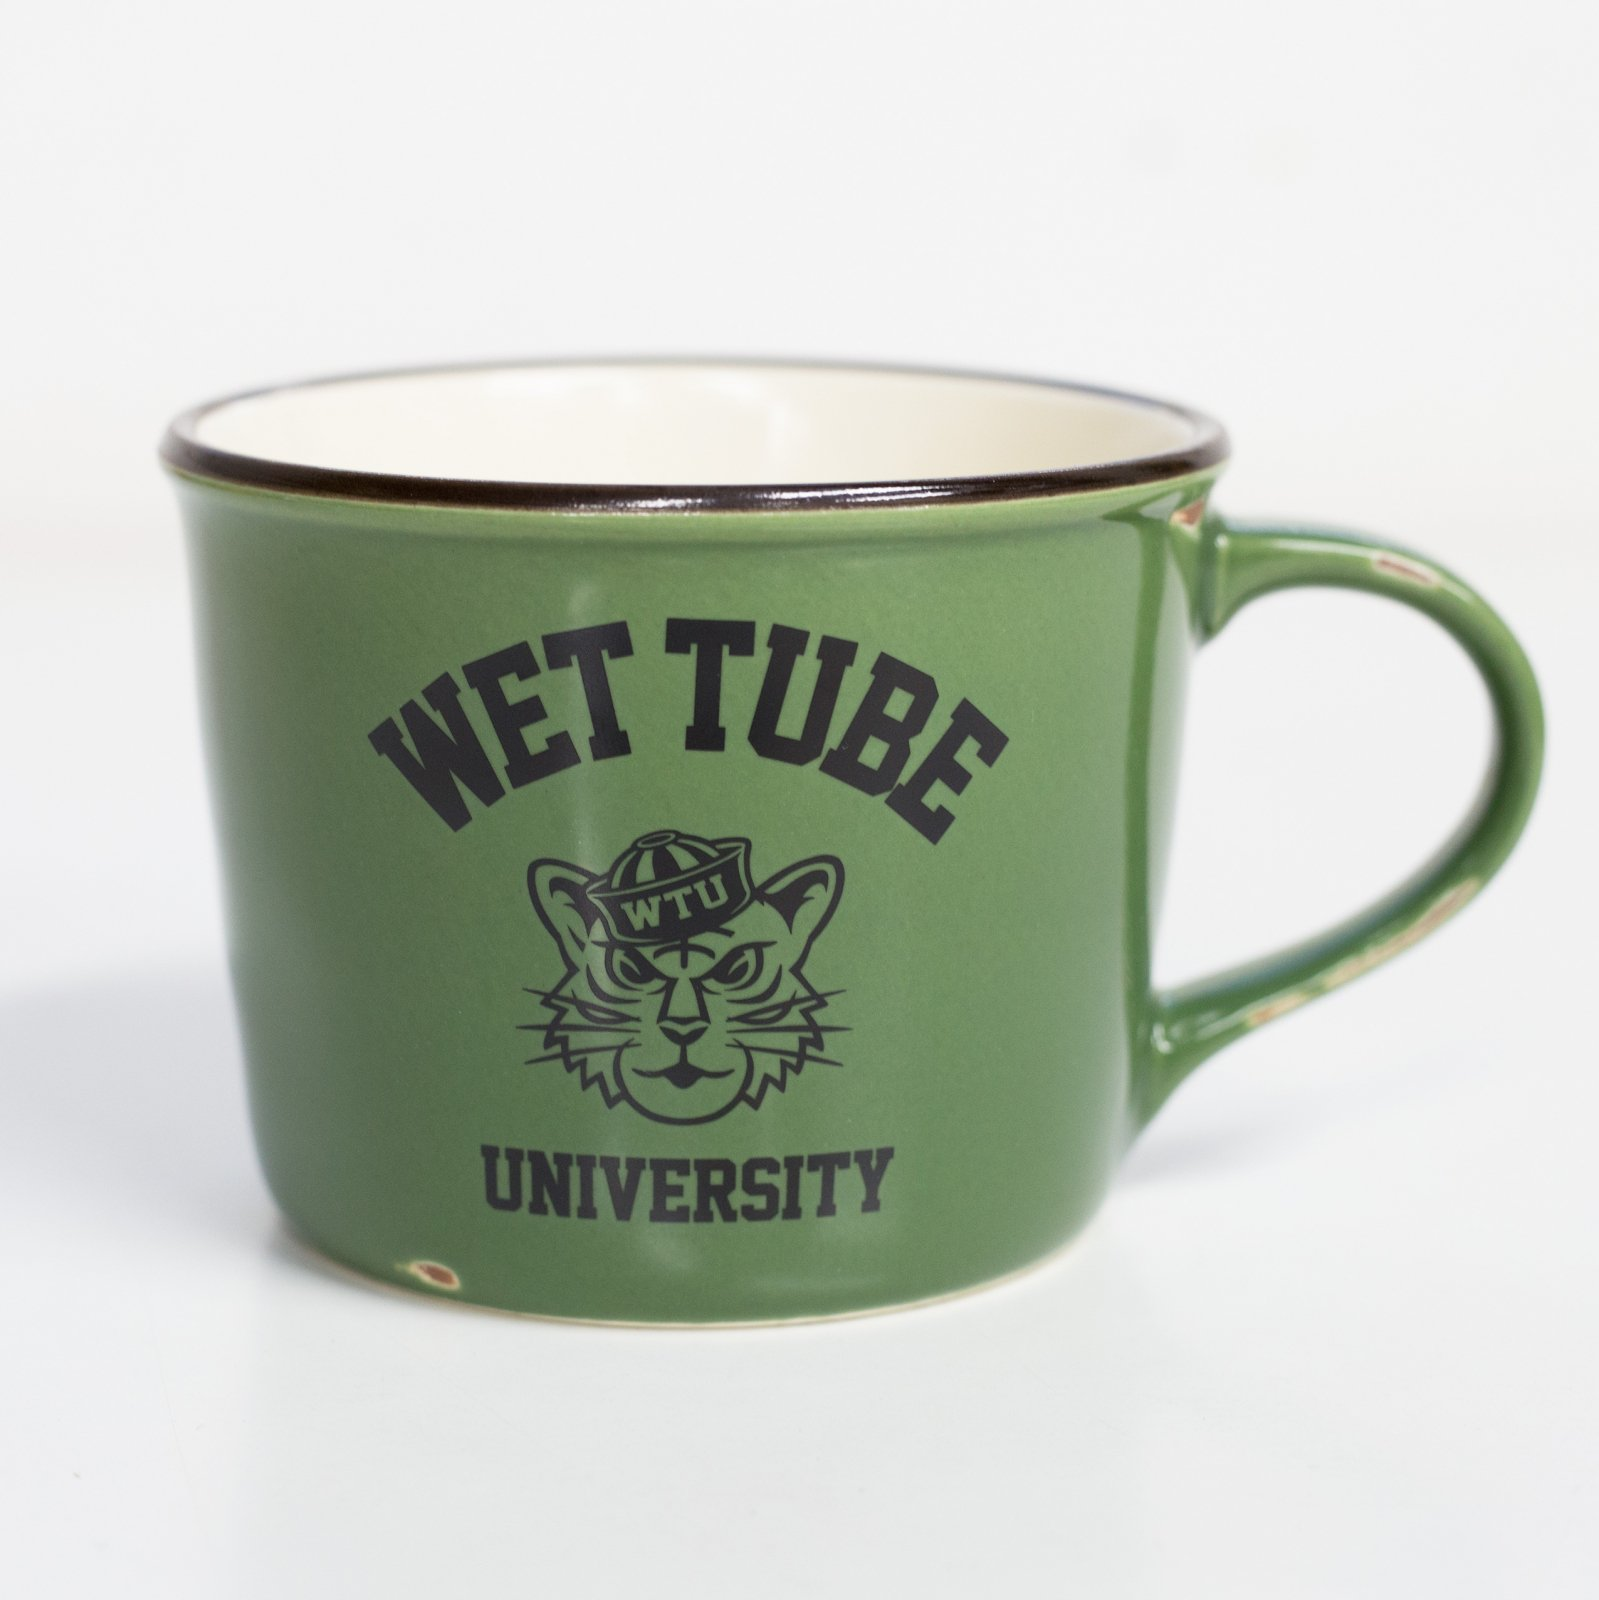 <img class='new_mark_img1' src='https://img.shop-pro.jp/img/new/icons14.gif' style='border:none;display:inline;margin:0px;padding:0px;width:auto;' />WET TUBE MUG CUP(GREEN)